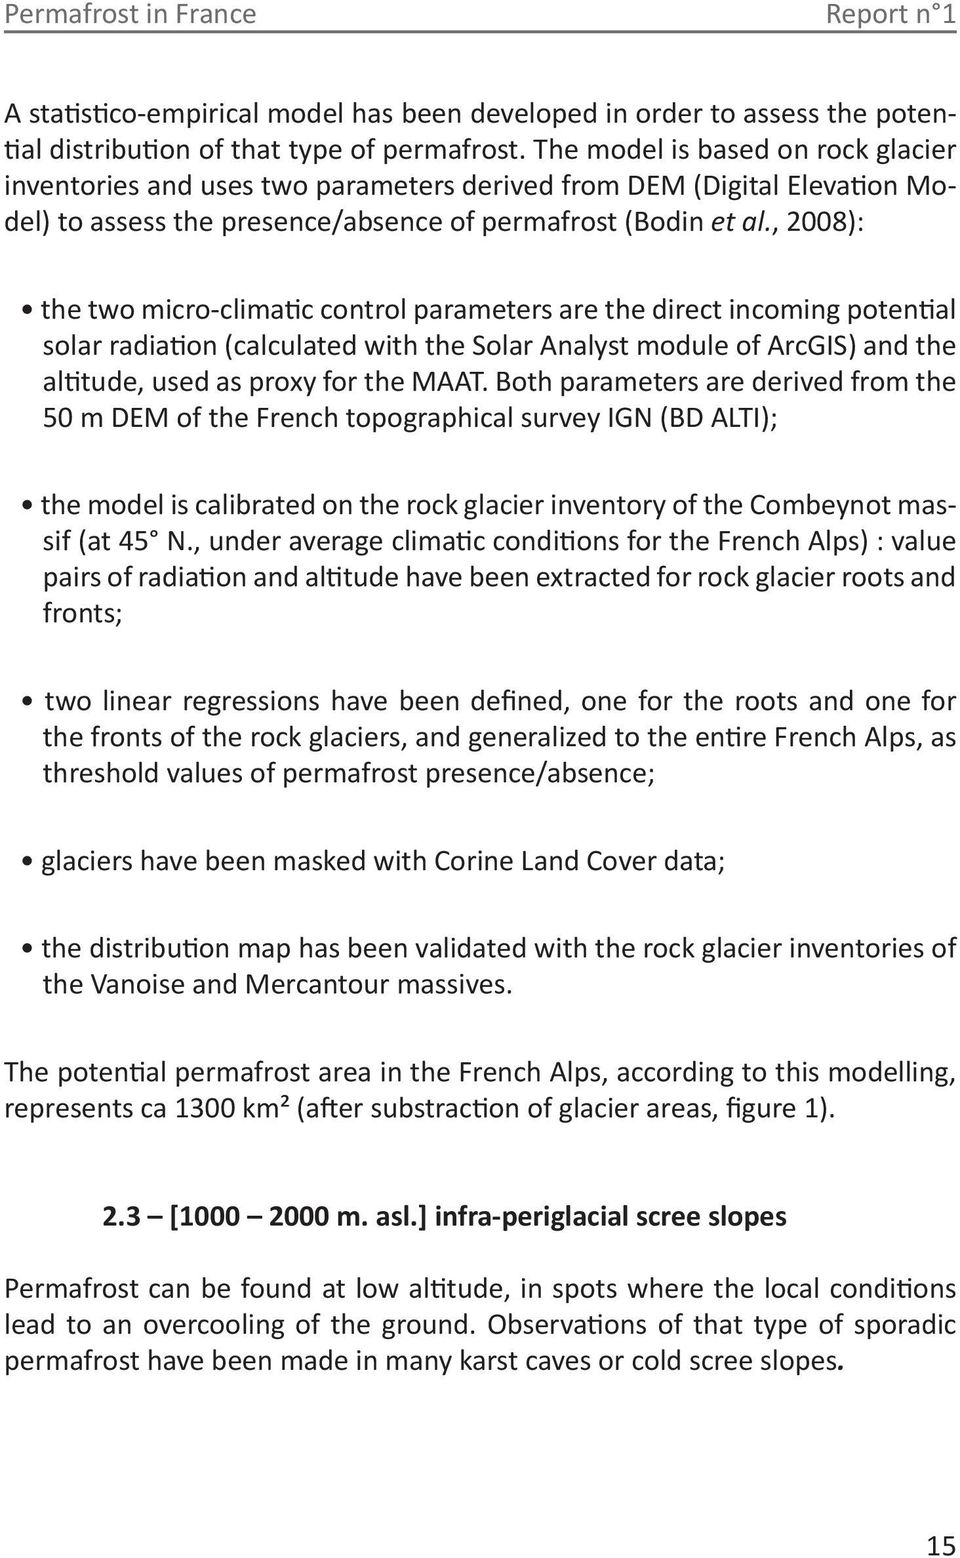 , 2008): the two micro-climatic control parameters are the direct incoming potential solar radiation (calculated with the Solar Analyst module of ArcGIS) and the altitude, used as proxy for the MAAT.